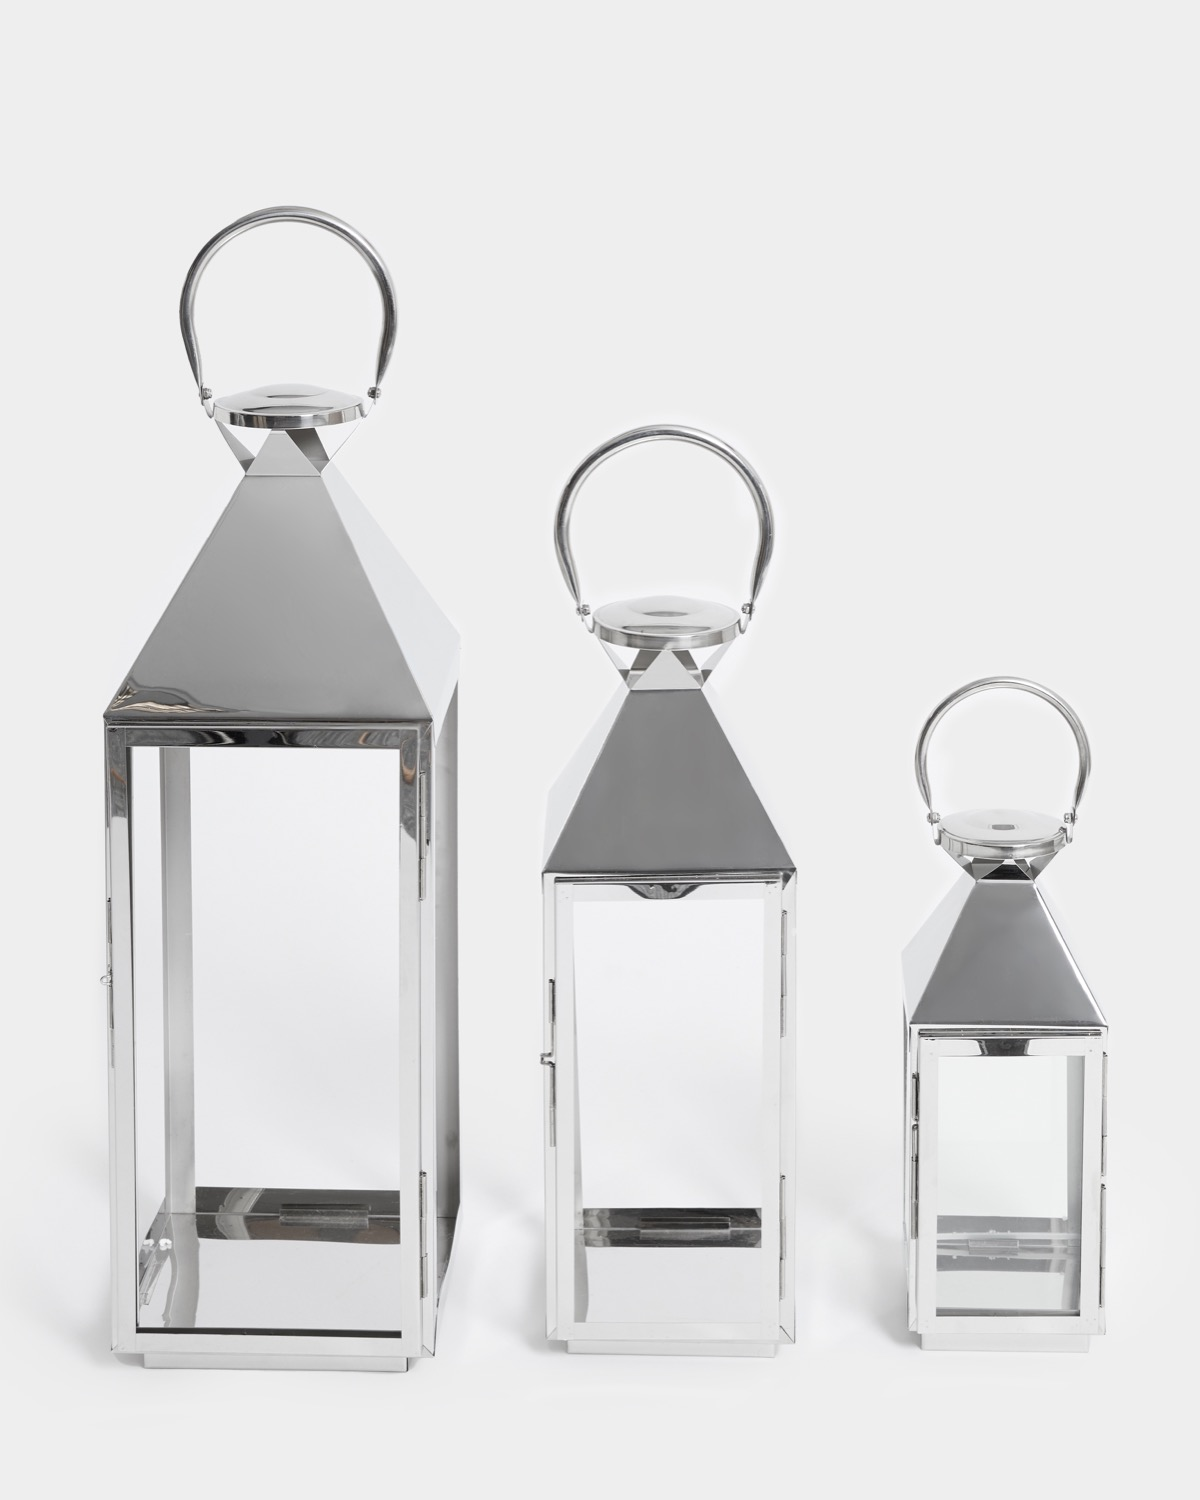 Dunnes Stores Silver Stainless Steel Lantern